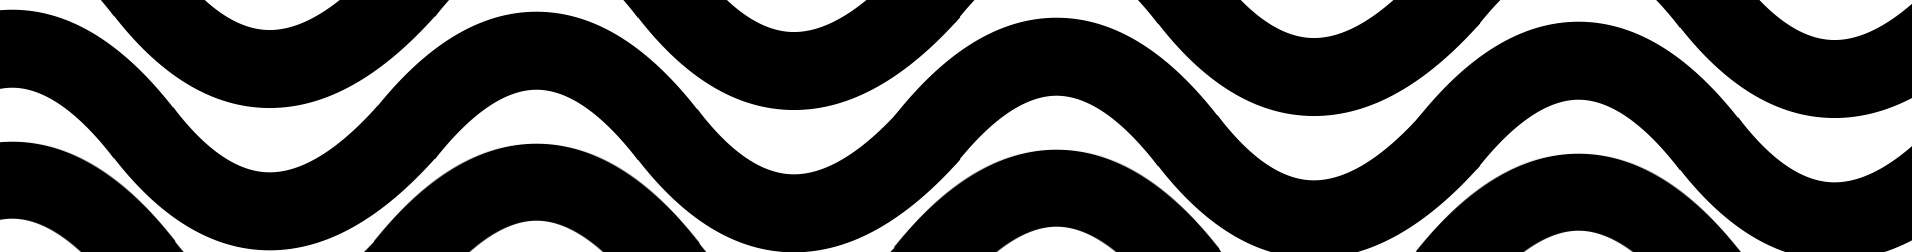 the-hydra-ride-black-waves-image-1